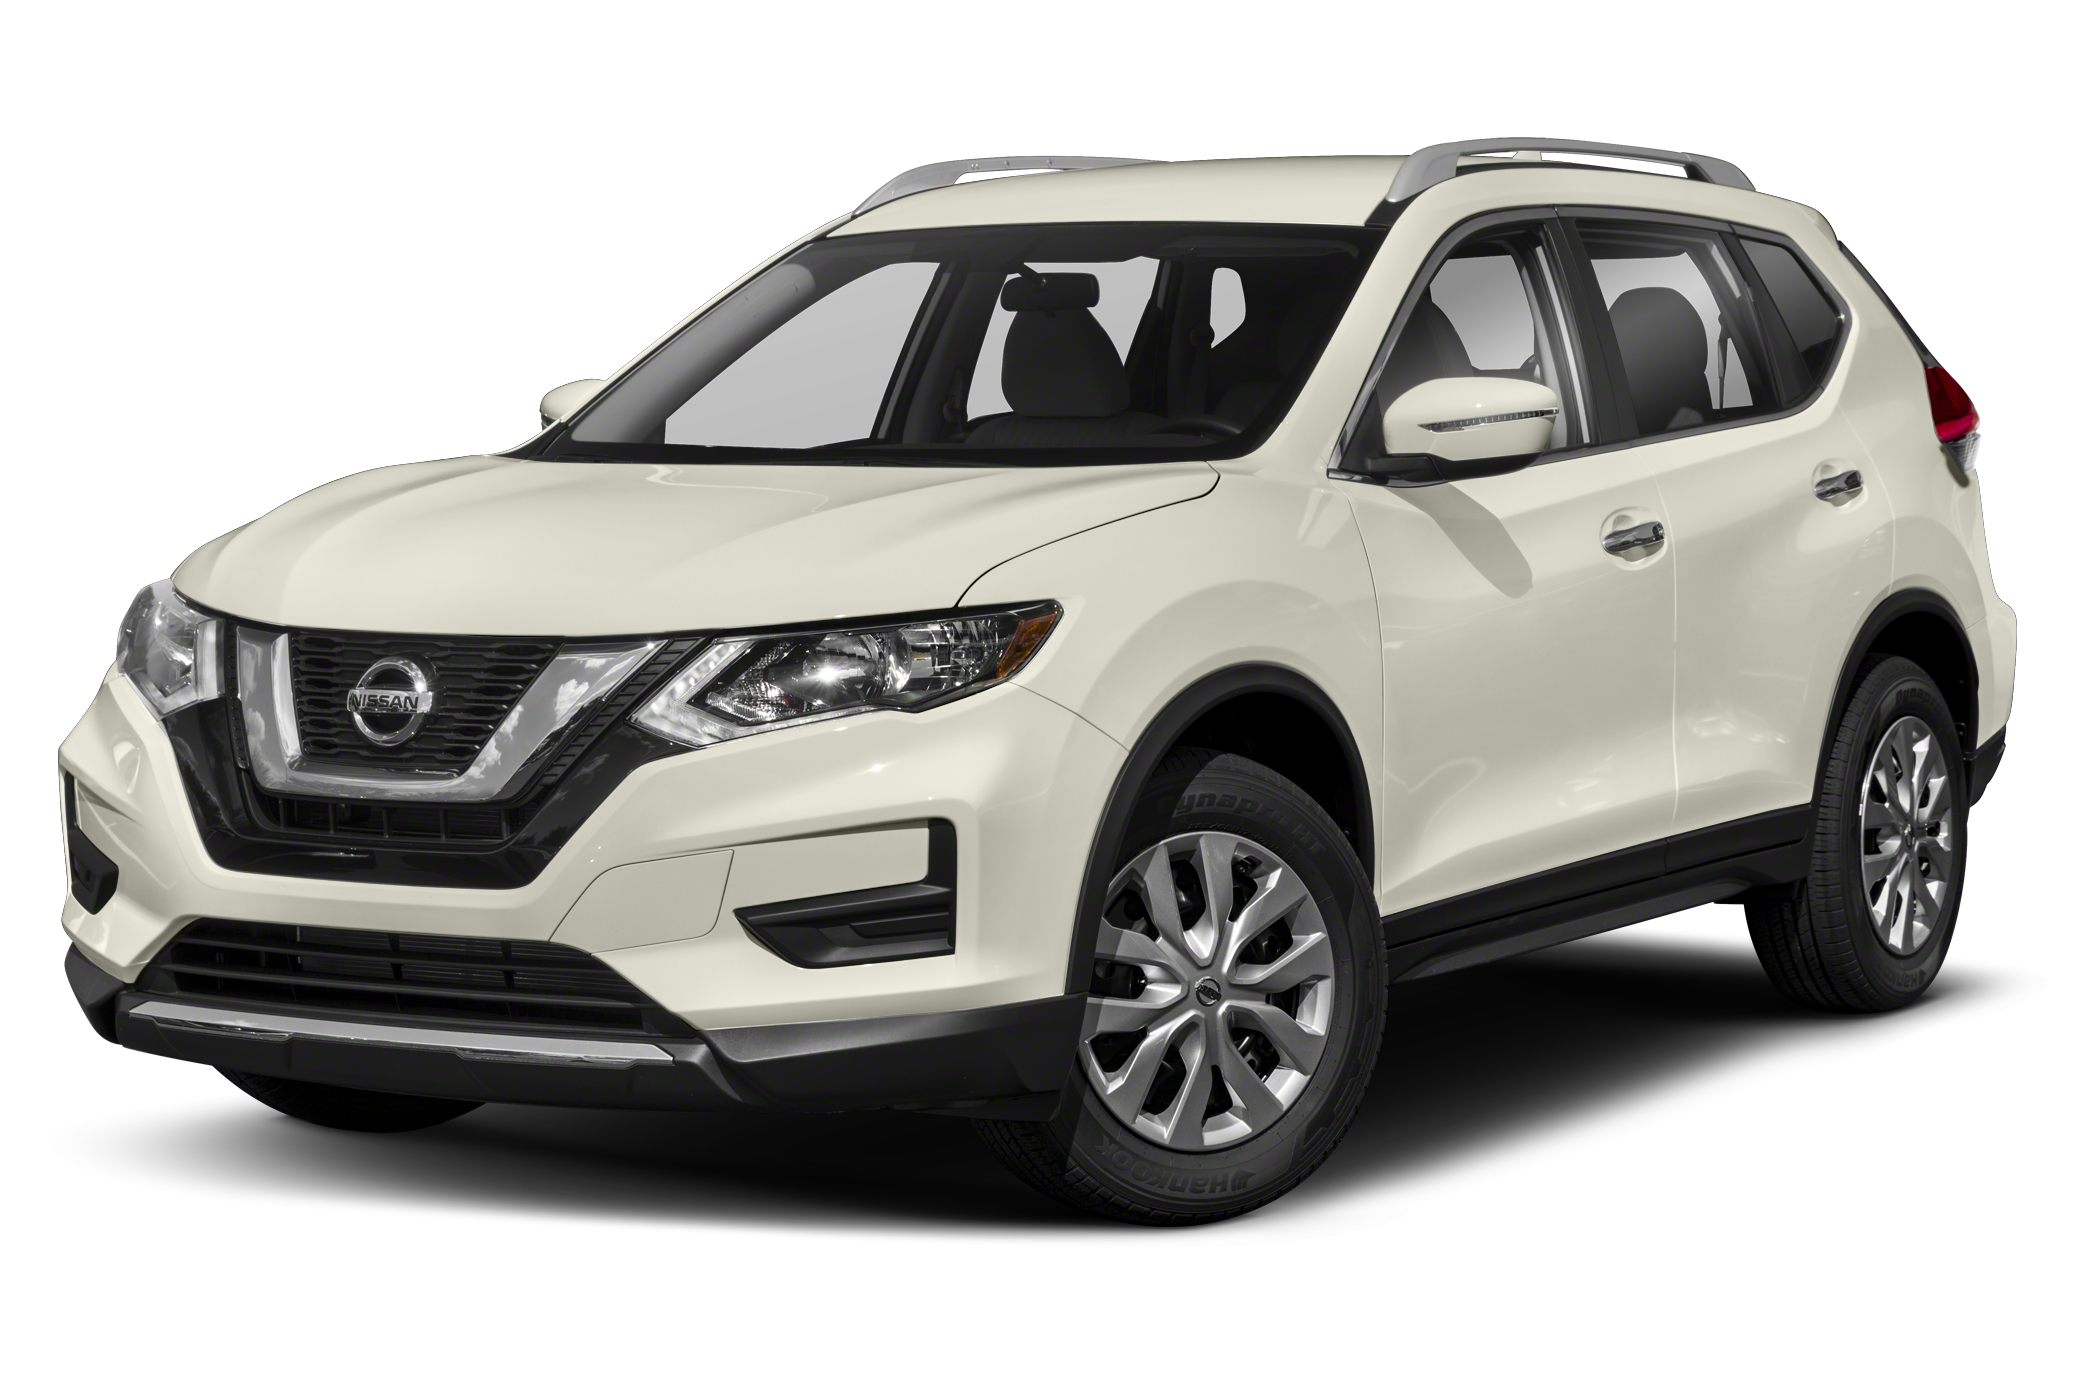 2018 nissan rogue sv for sale vin knmat2mt9jp